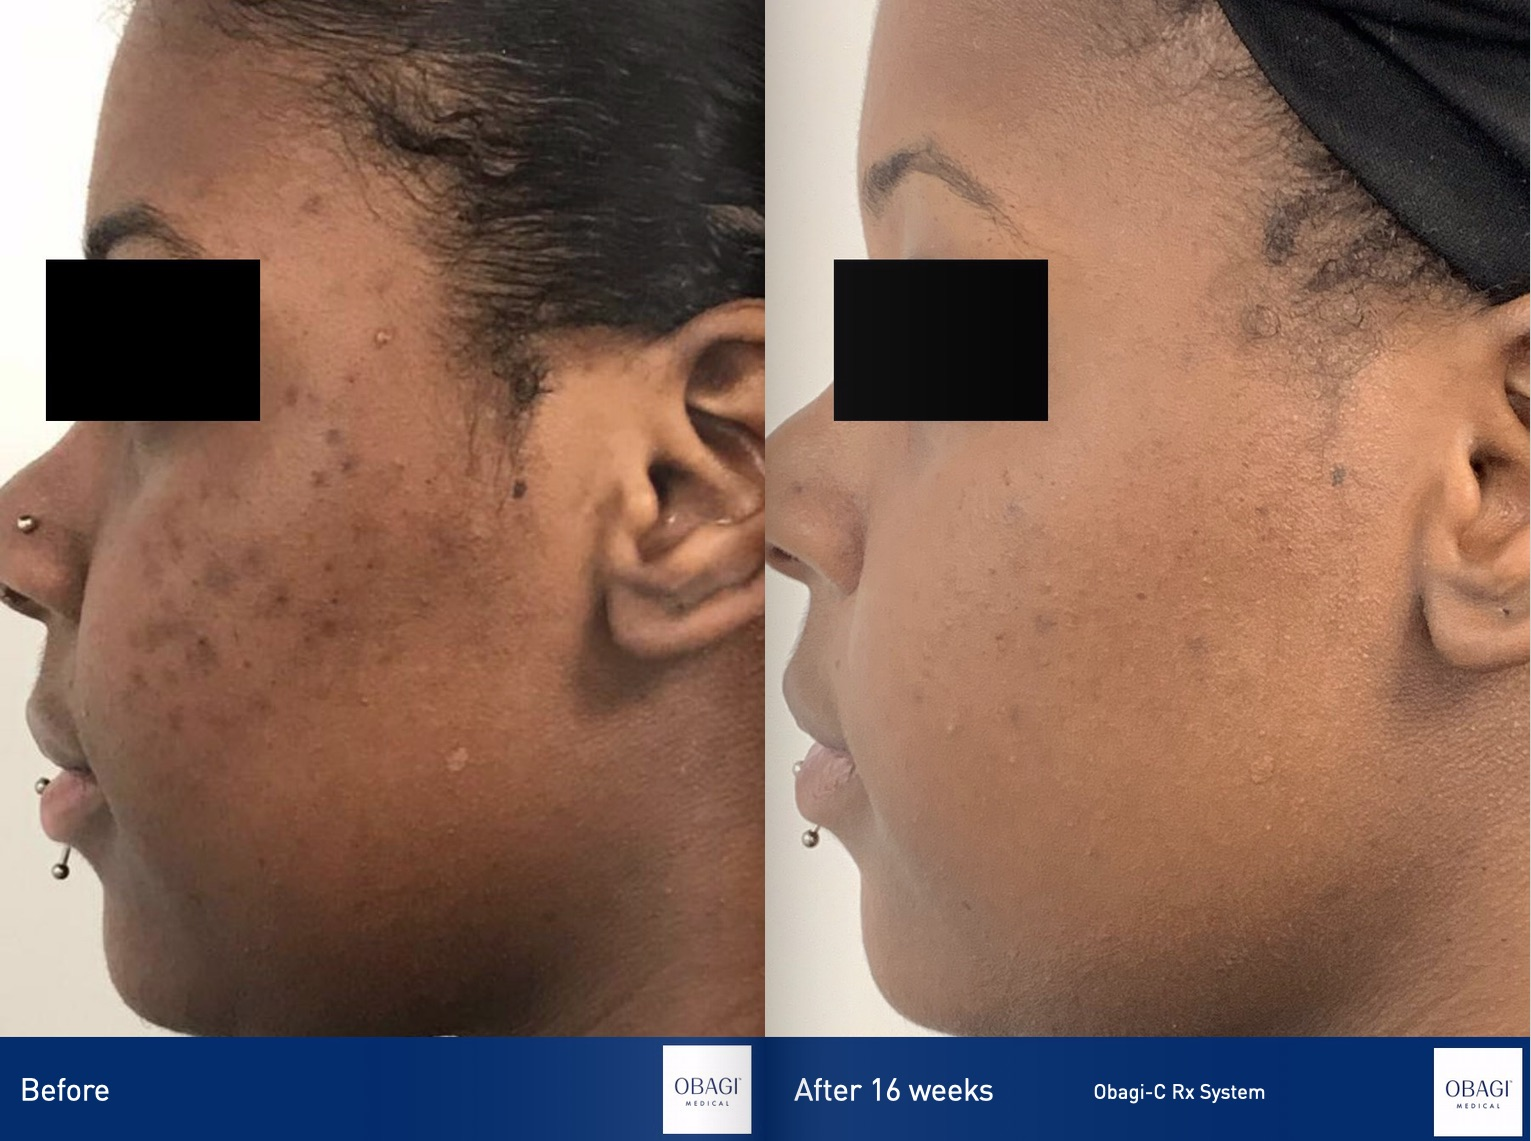 Obagi CRx system skin treatment reduced acne and improved skin tone.